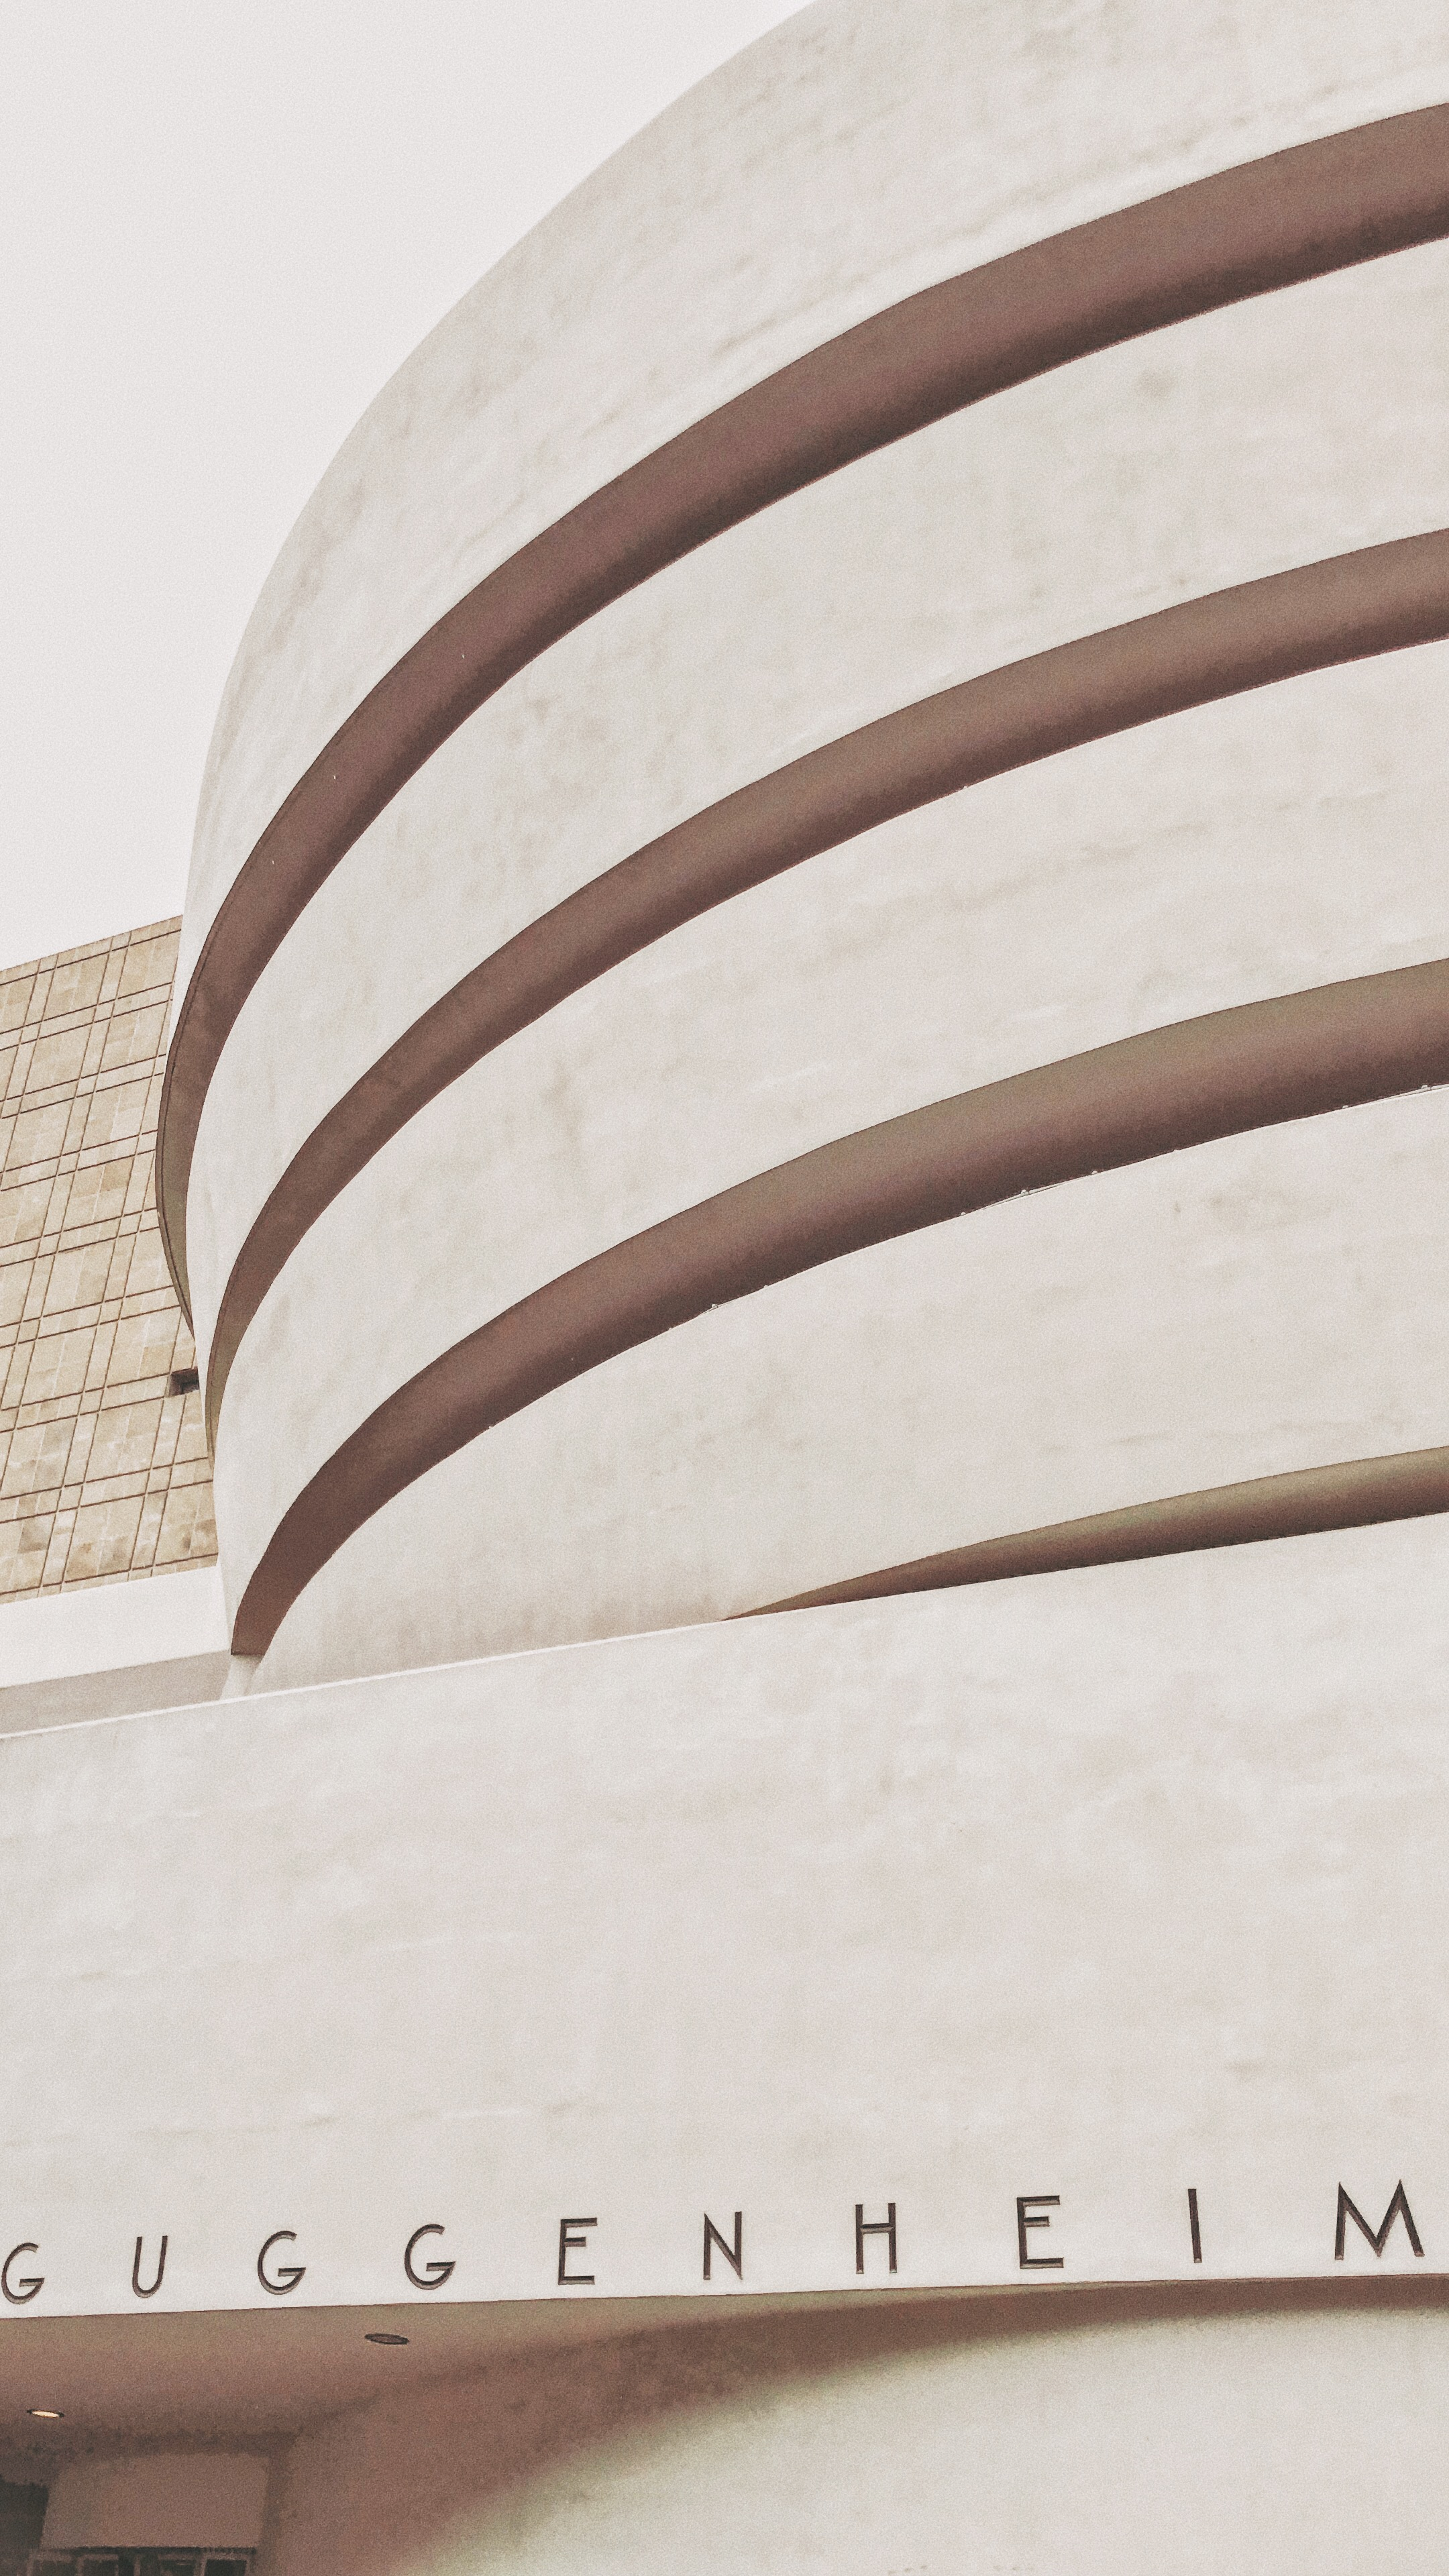 The Guggenheim  - Art and Culture